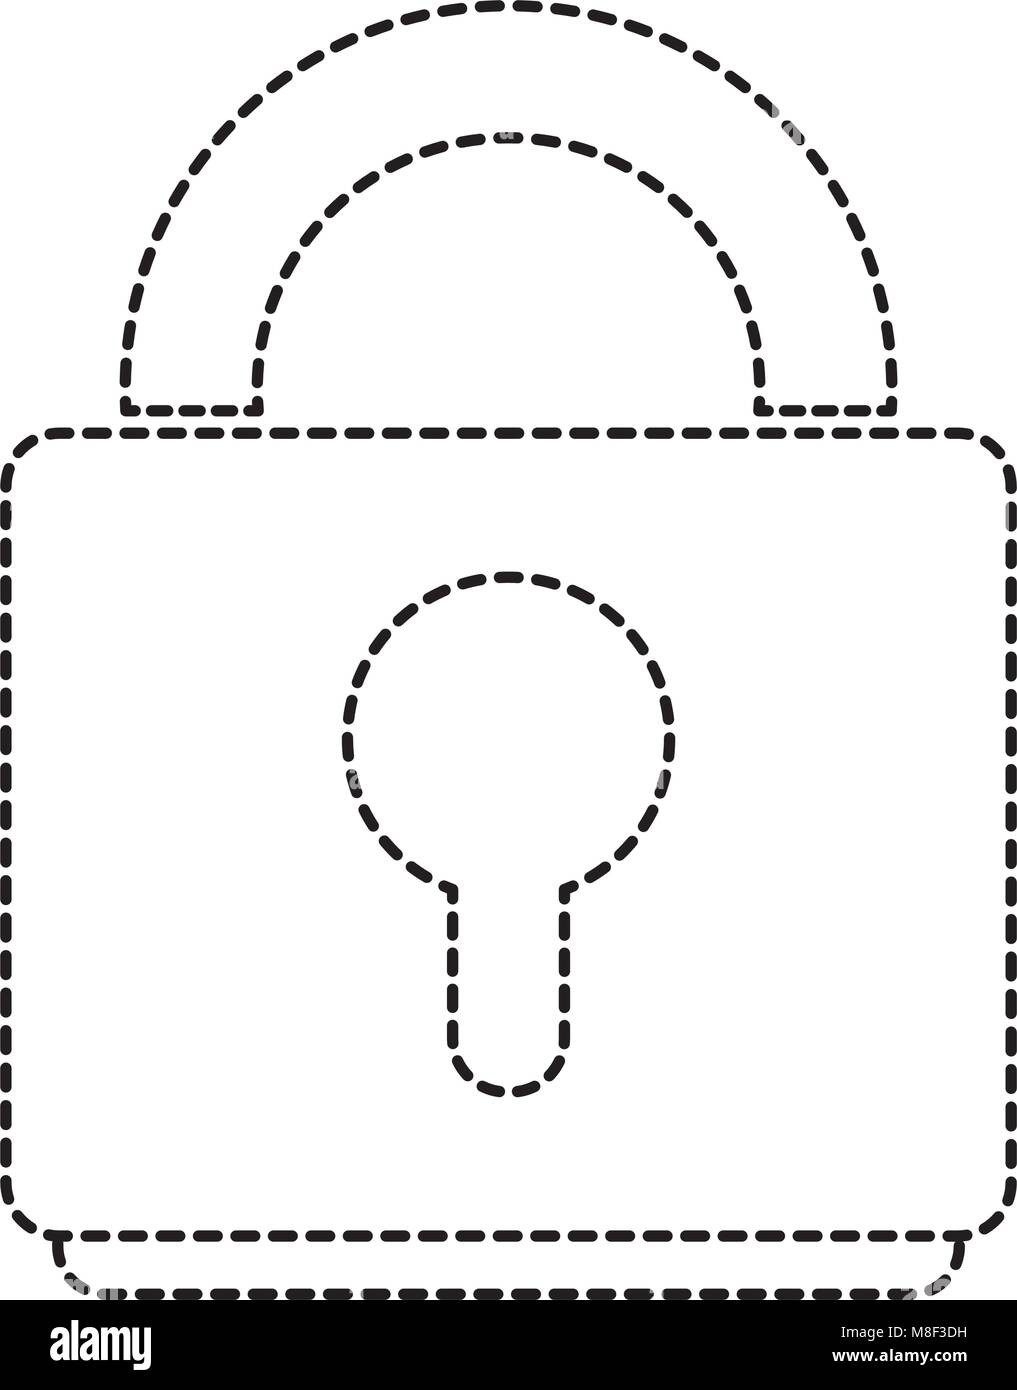 dotted shape close padlock object to security symbol - Stock Image